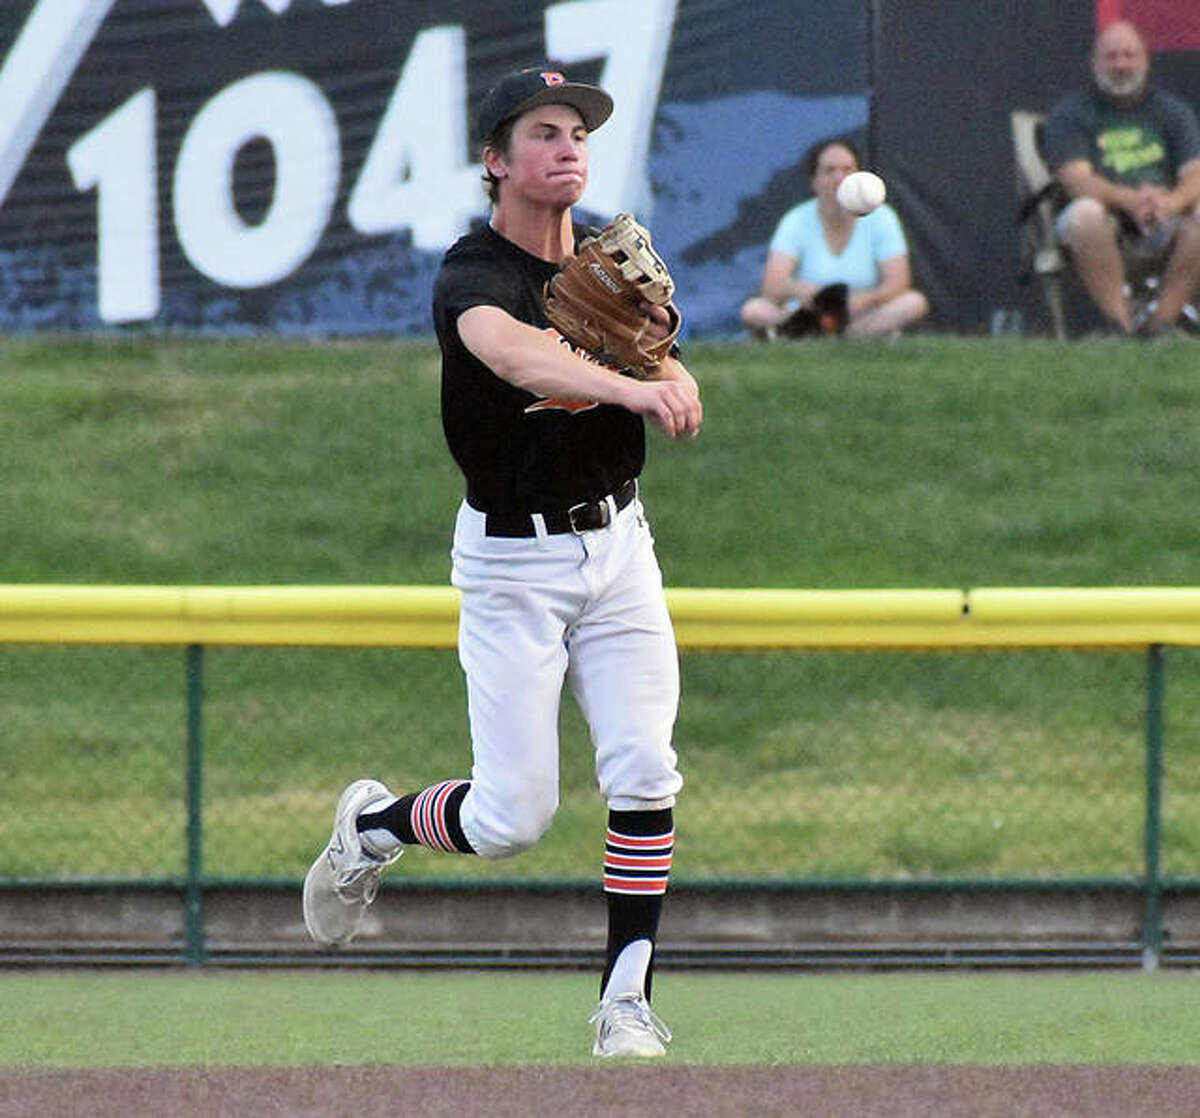 Edwardsville second baseman Evan Funkhouser fires a throw to first base for a force-out.